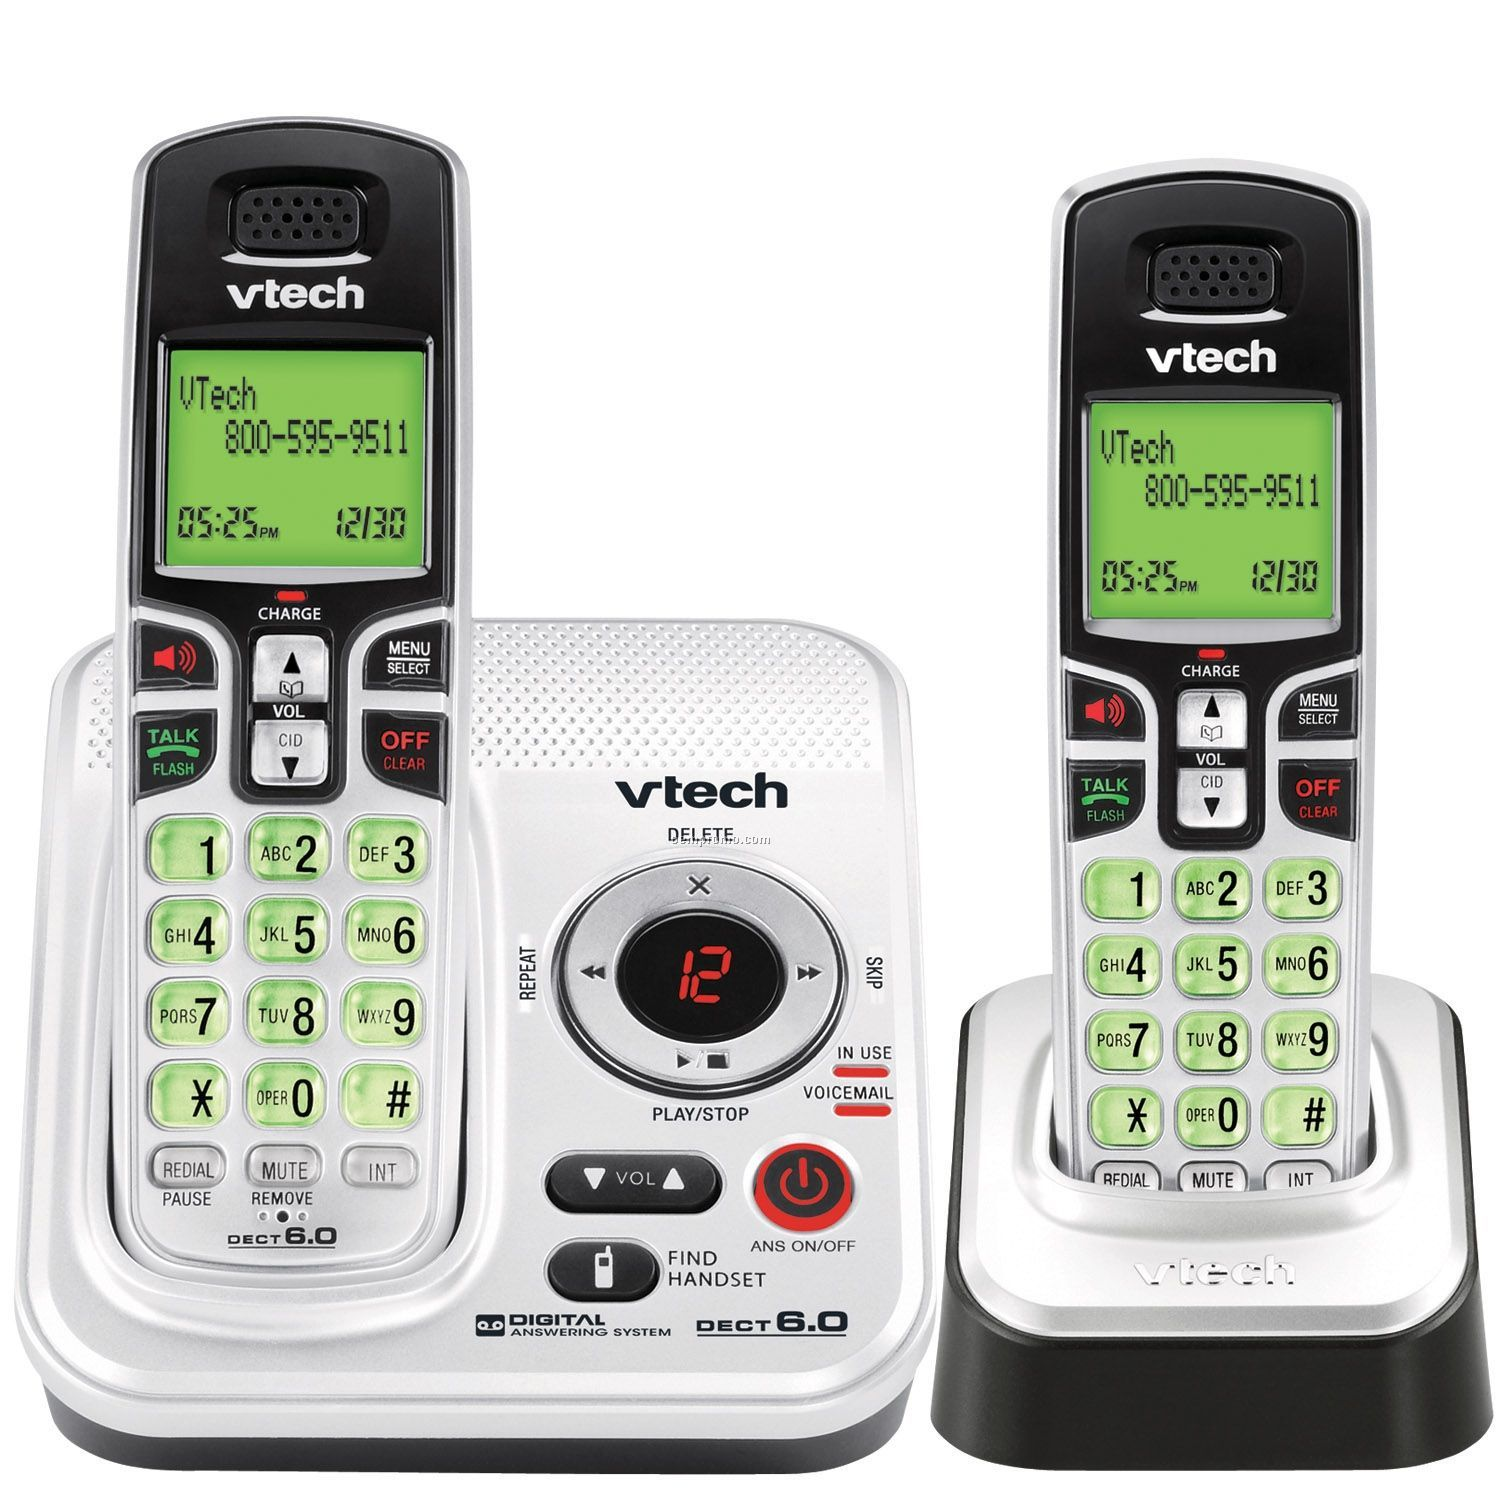 vtech 5.8 ghz cordless phone manual